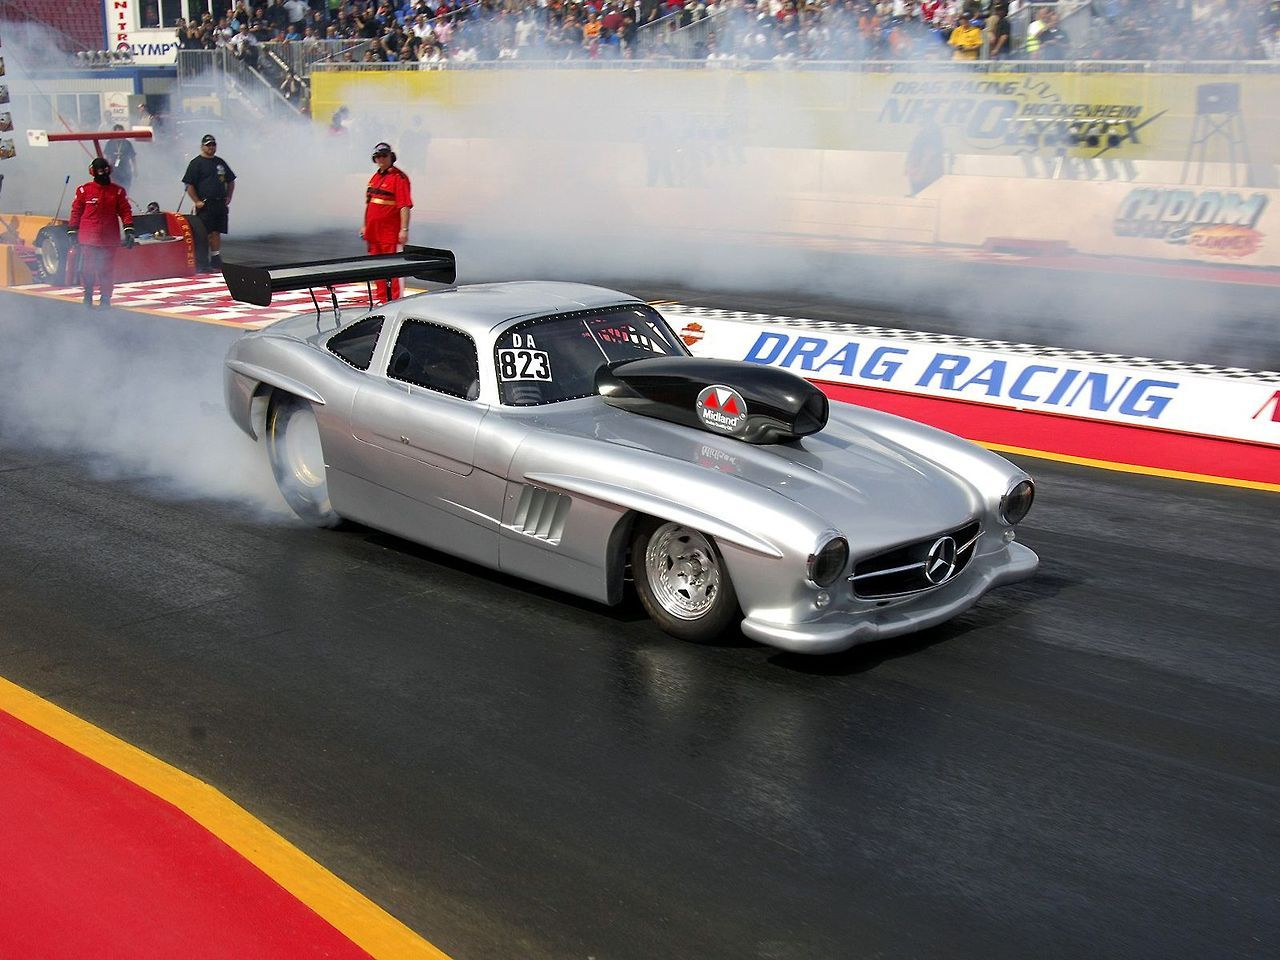 1968 Mustang Drag Race Car With Images Drag Racing Cars